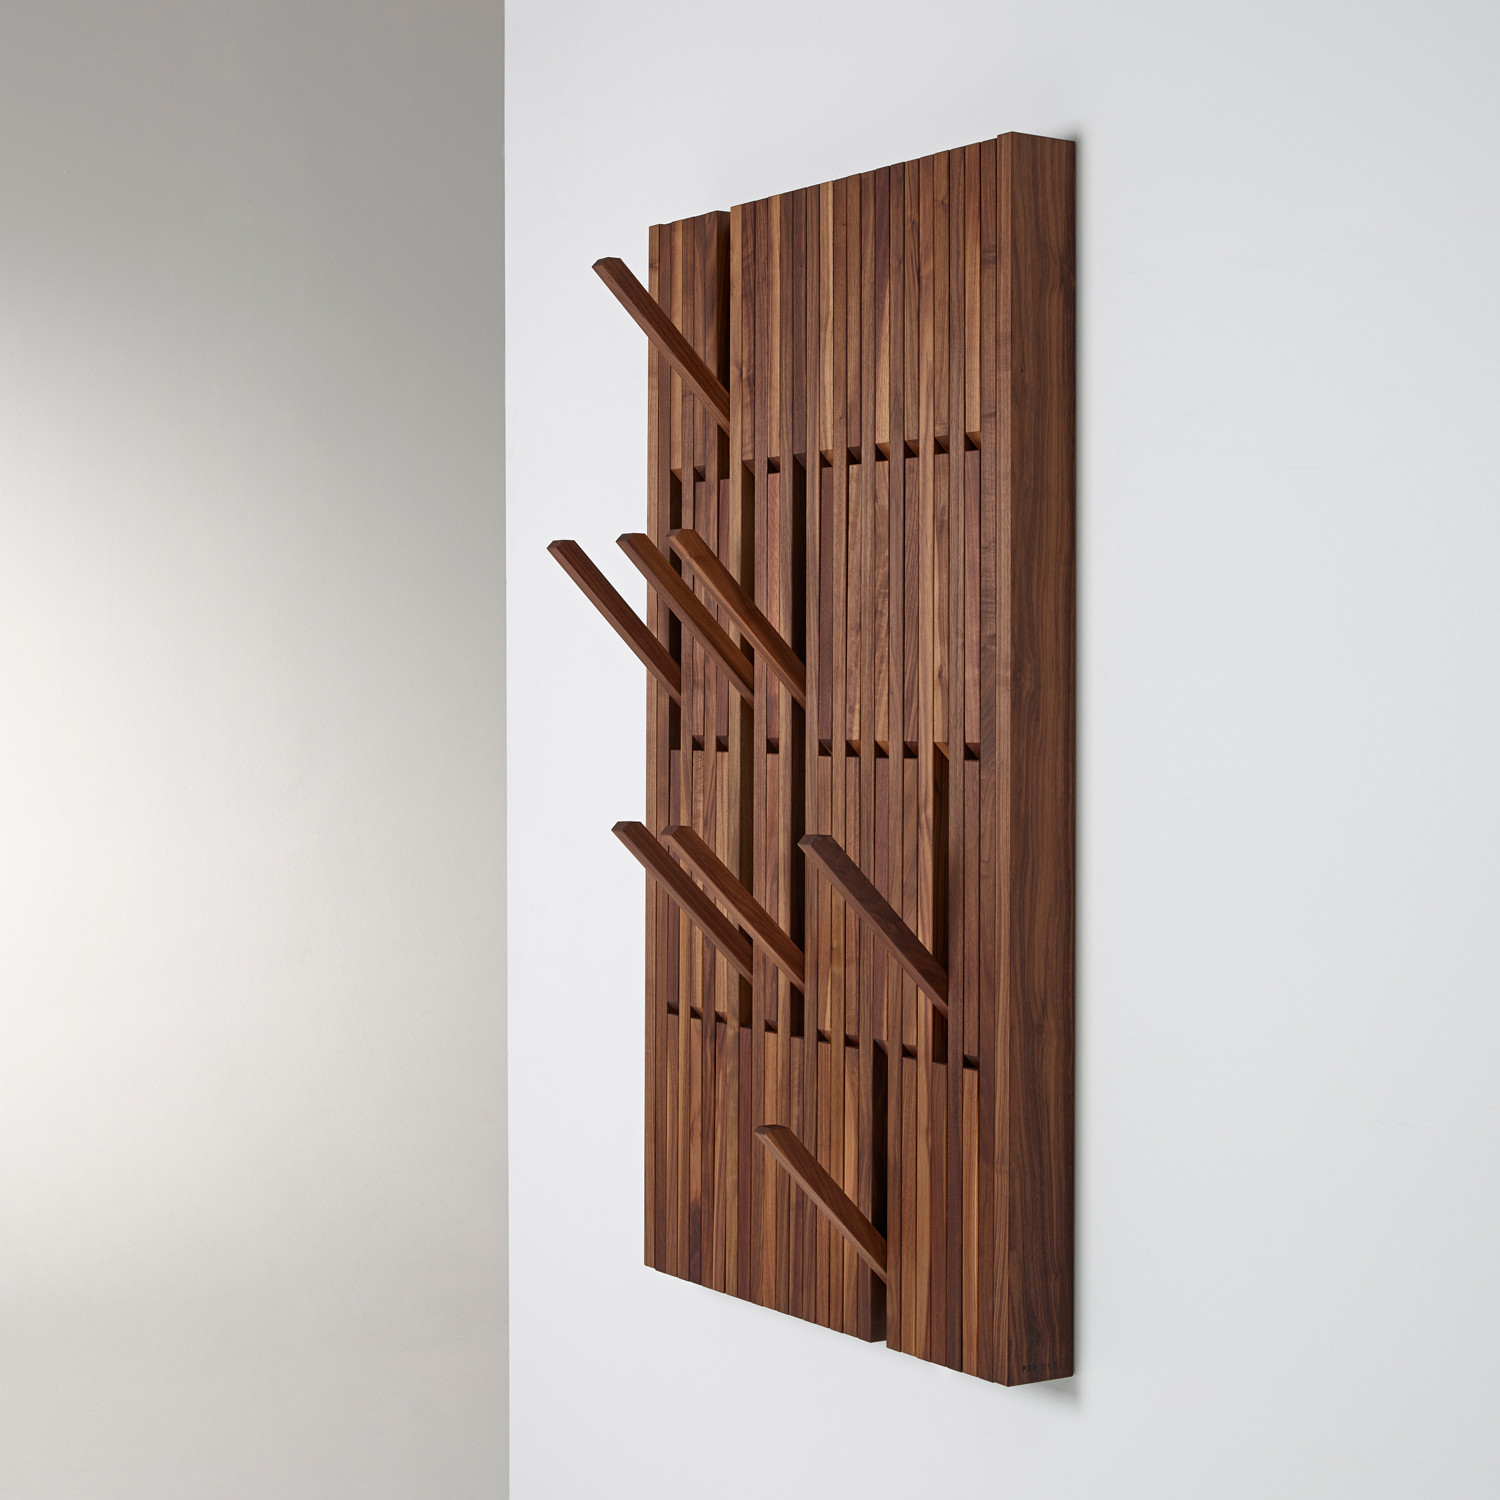 Piano Coat Rack Large Beech White PERUSE Touch of Modern